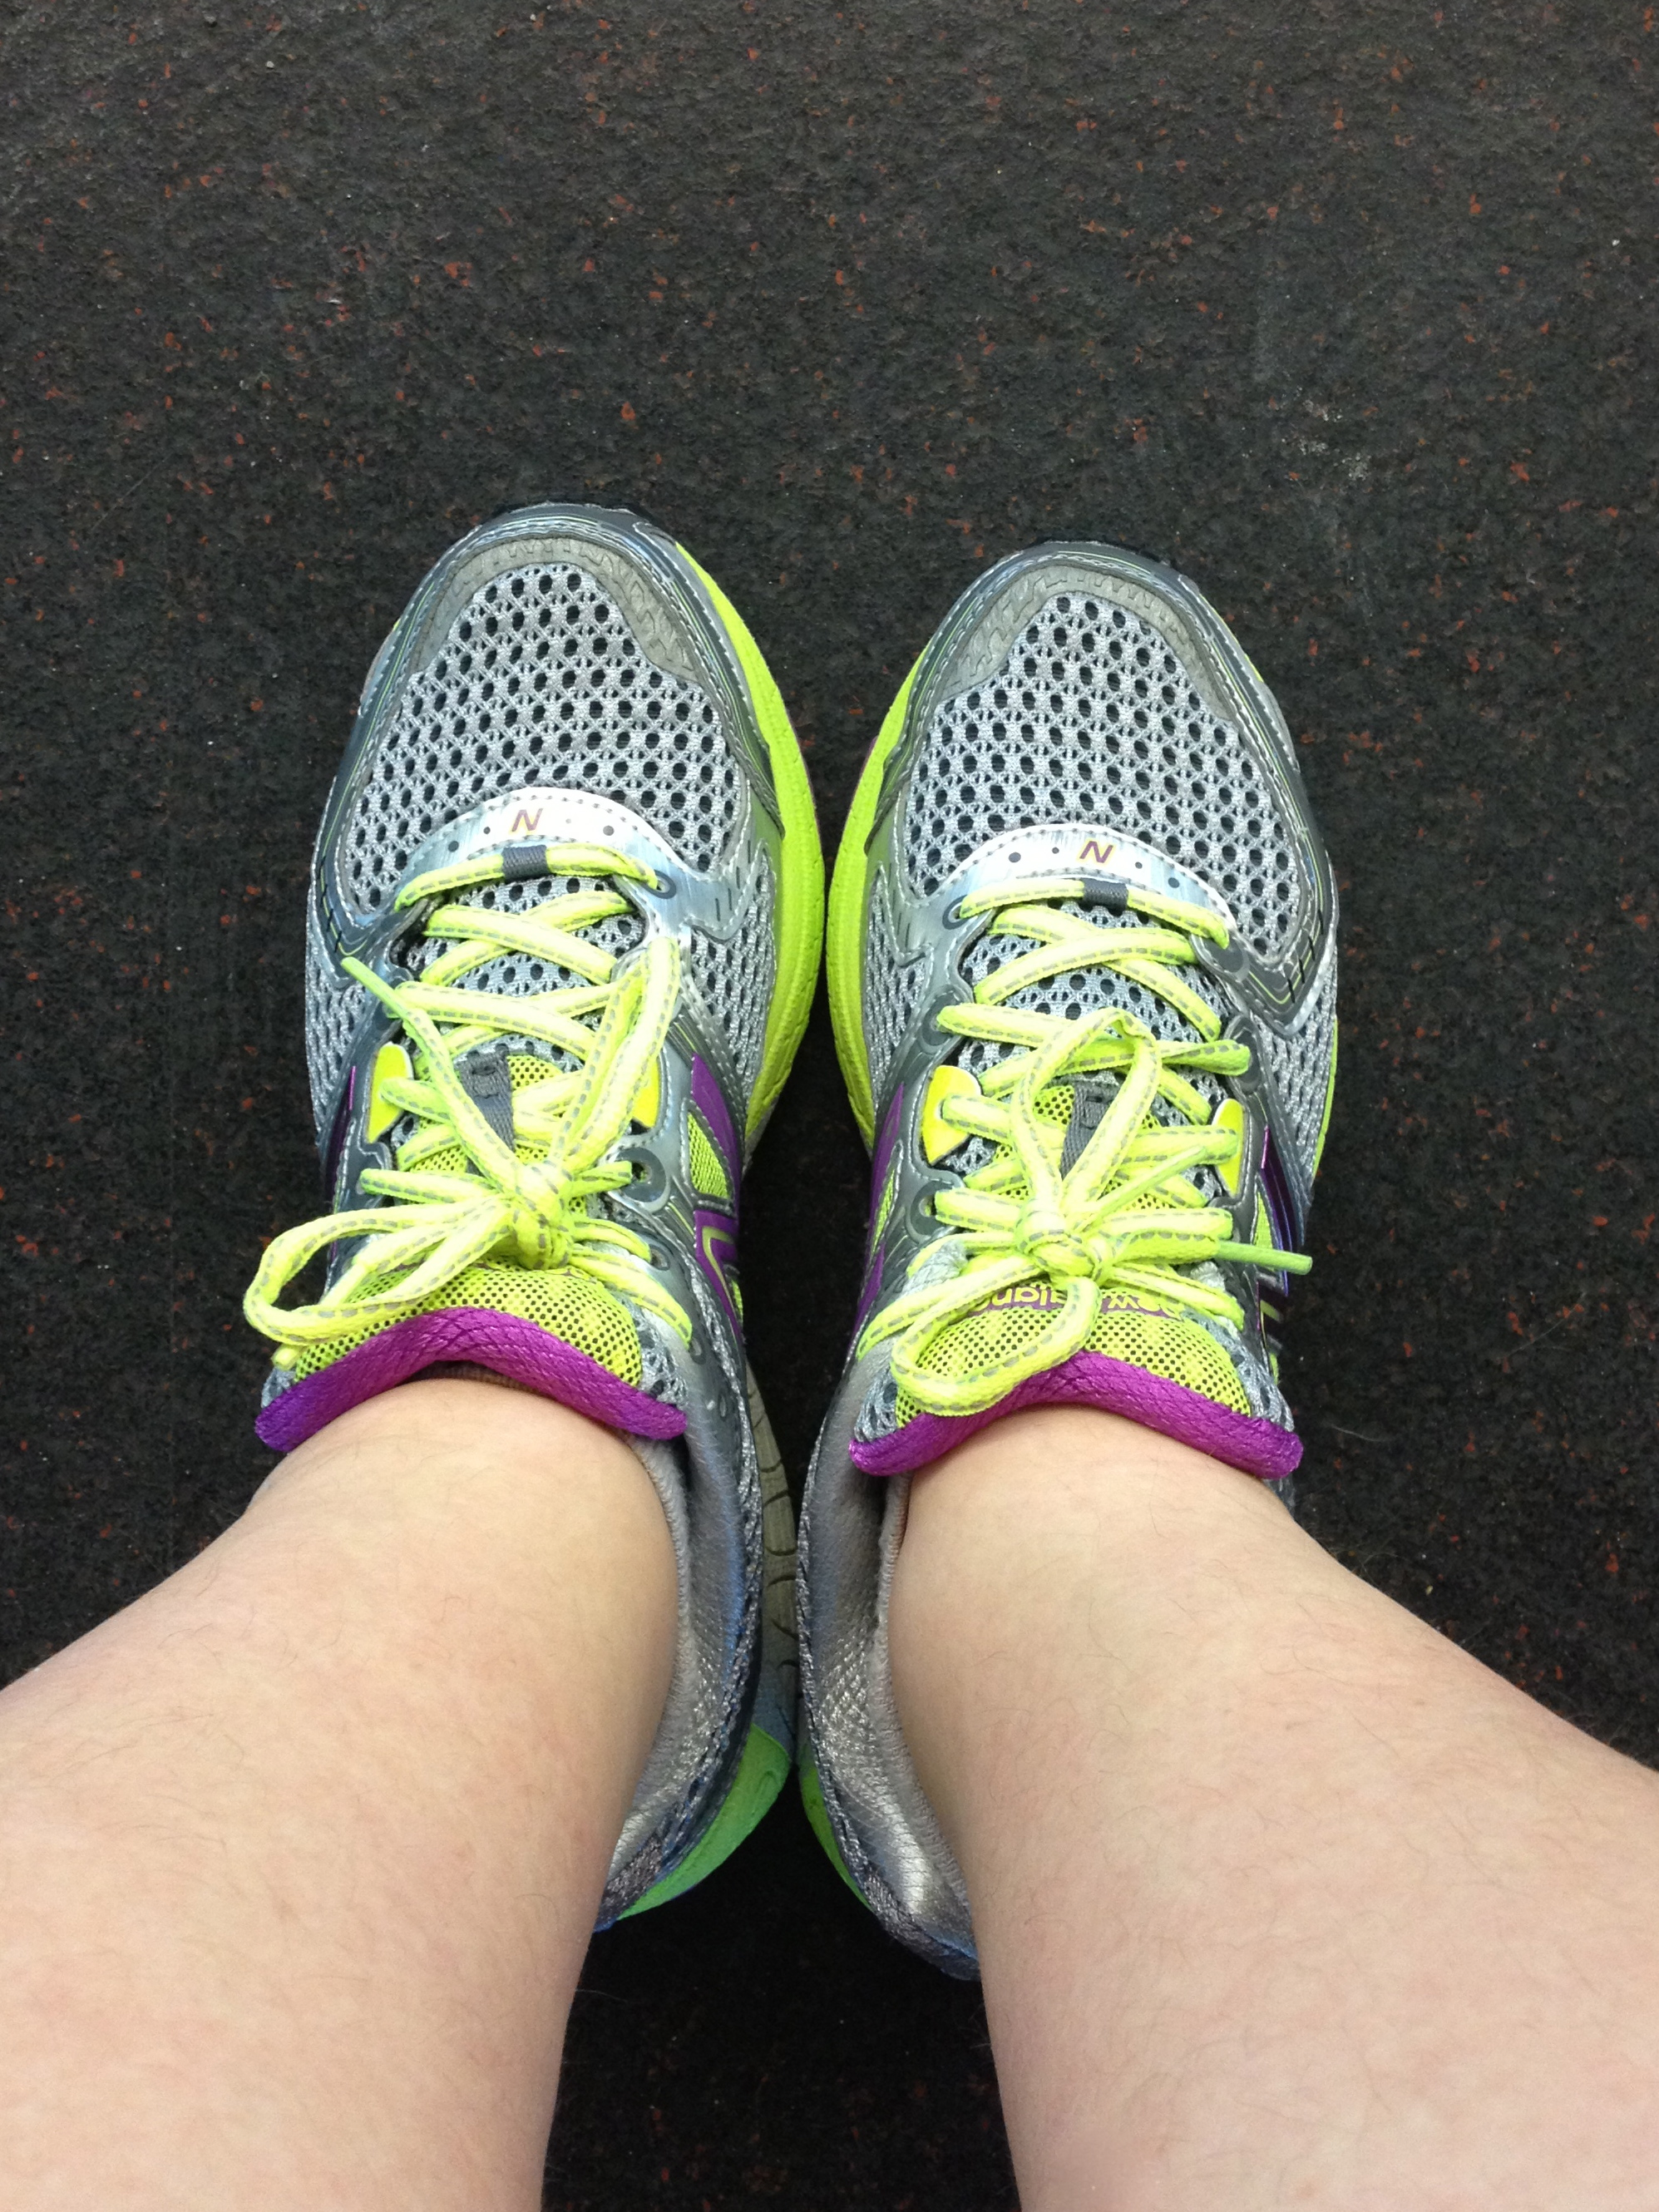 Fancy shoes make you go faster, right?